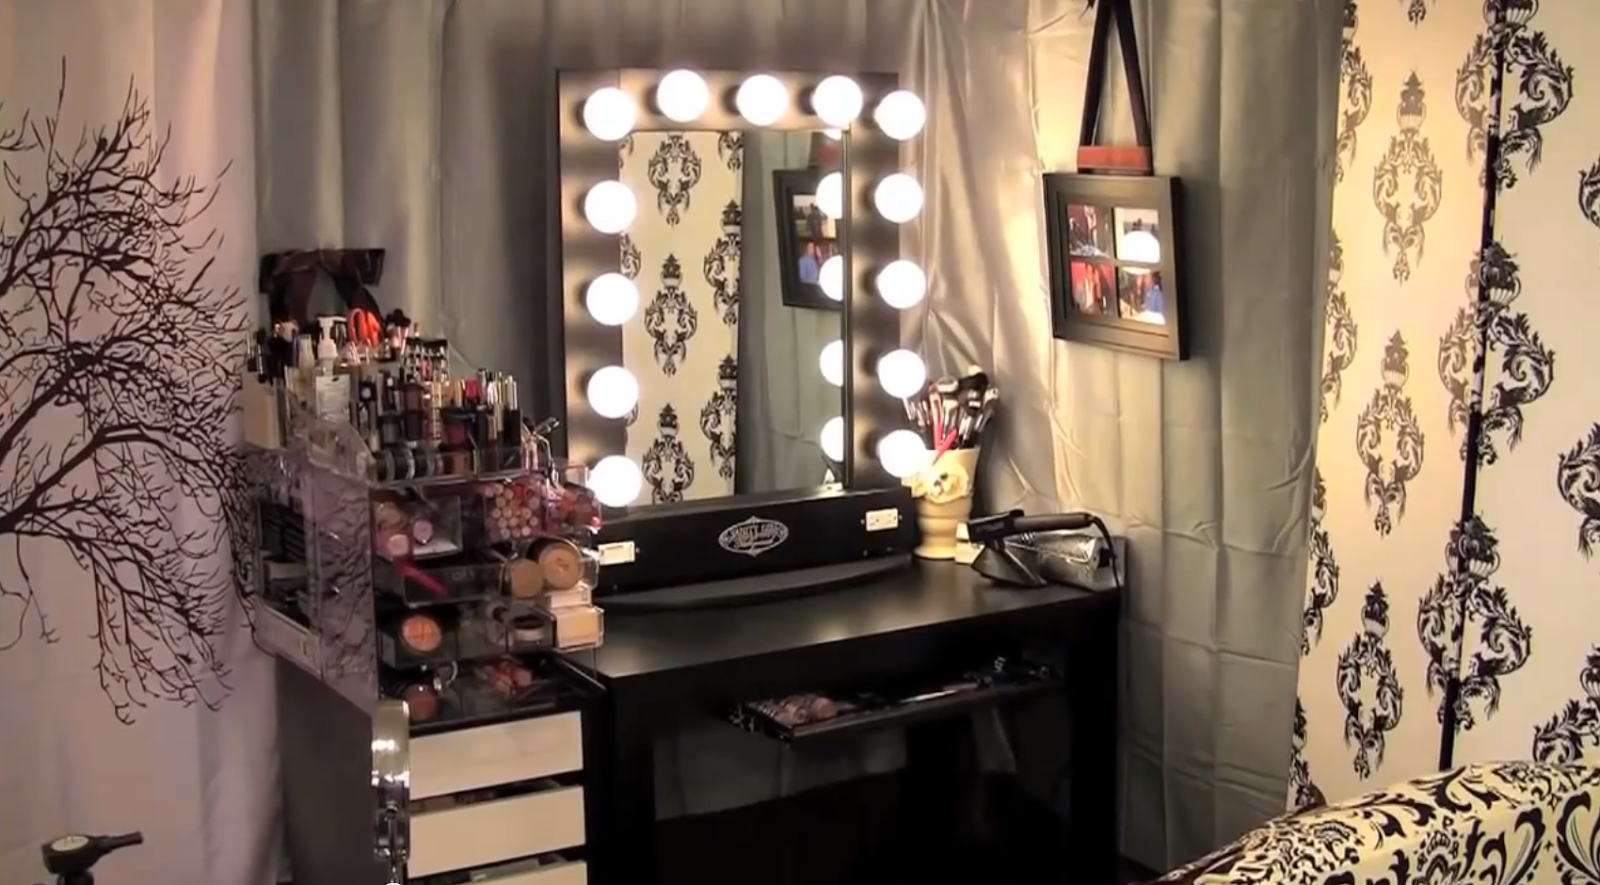 Bedroom vanity with mirror and lights